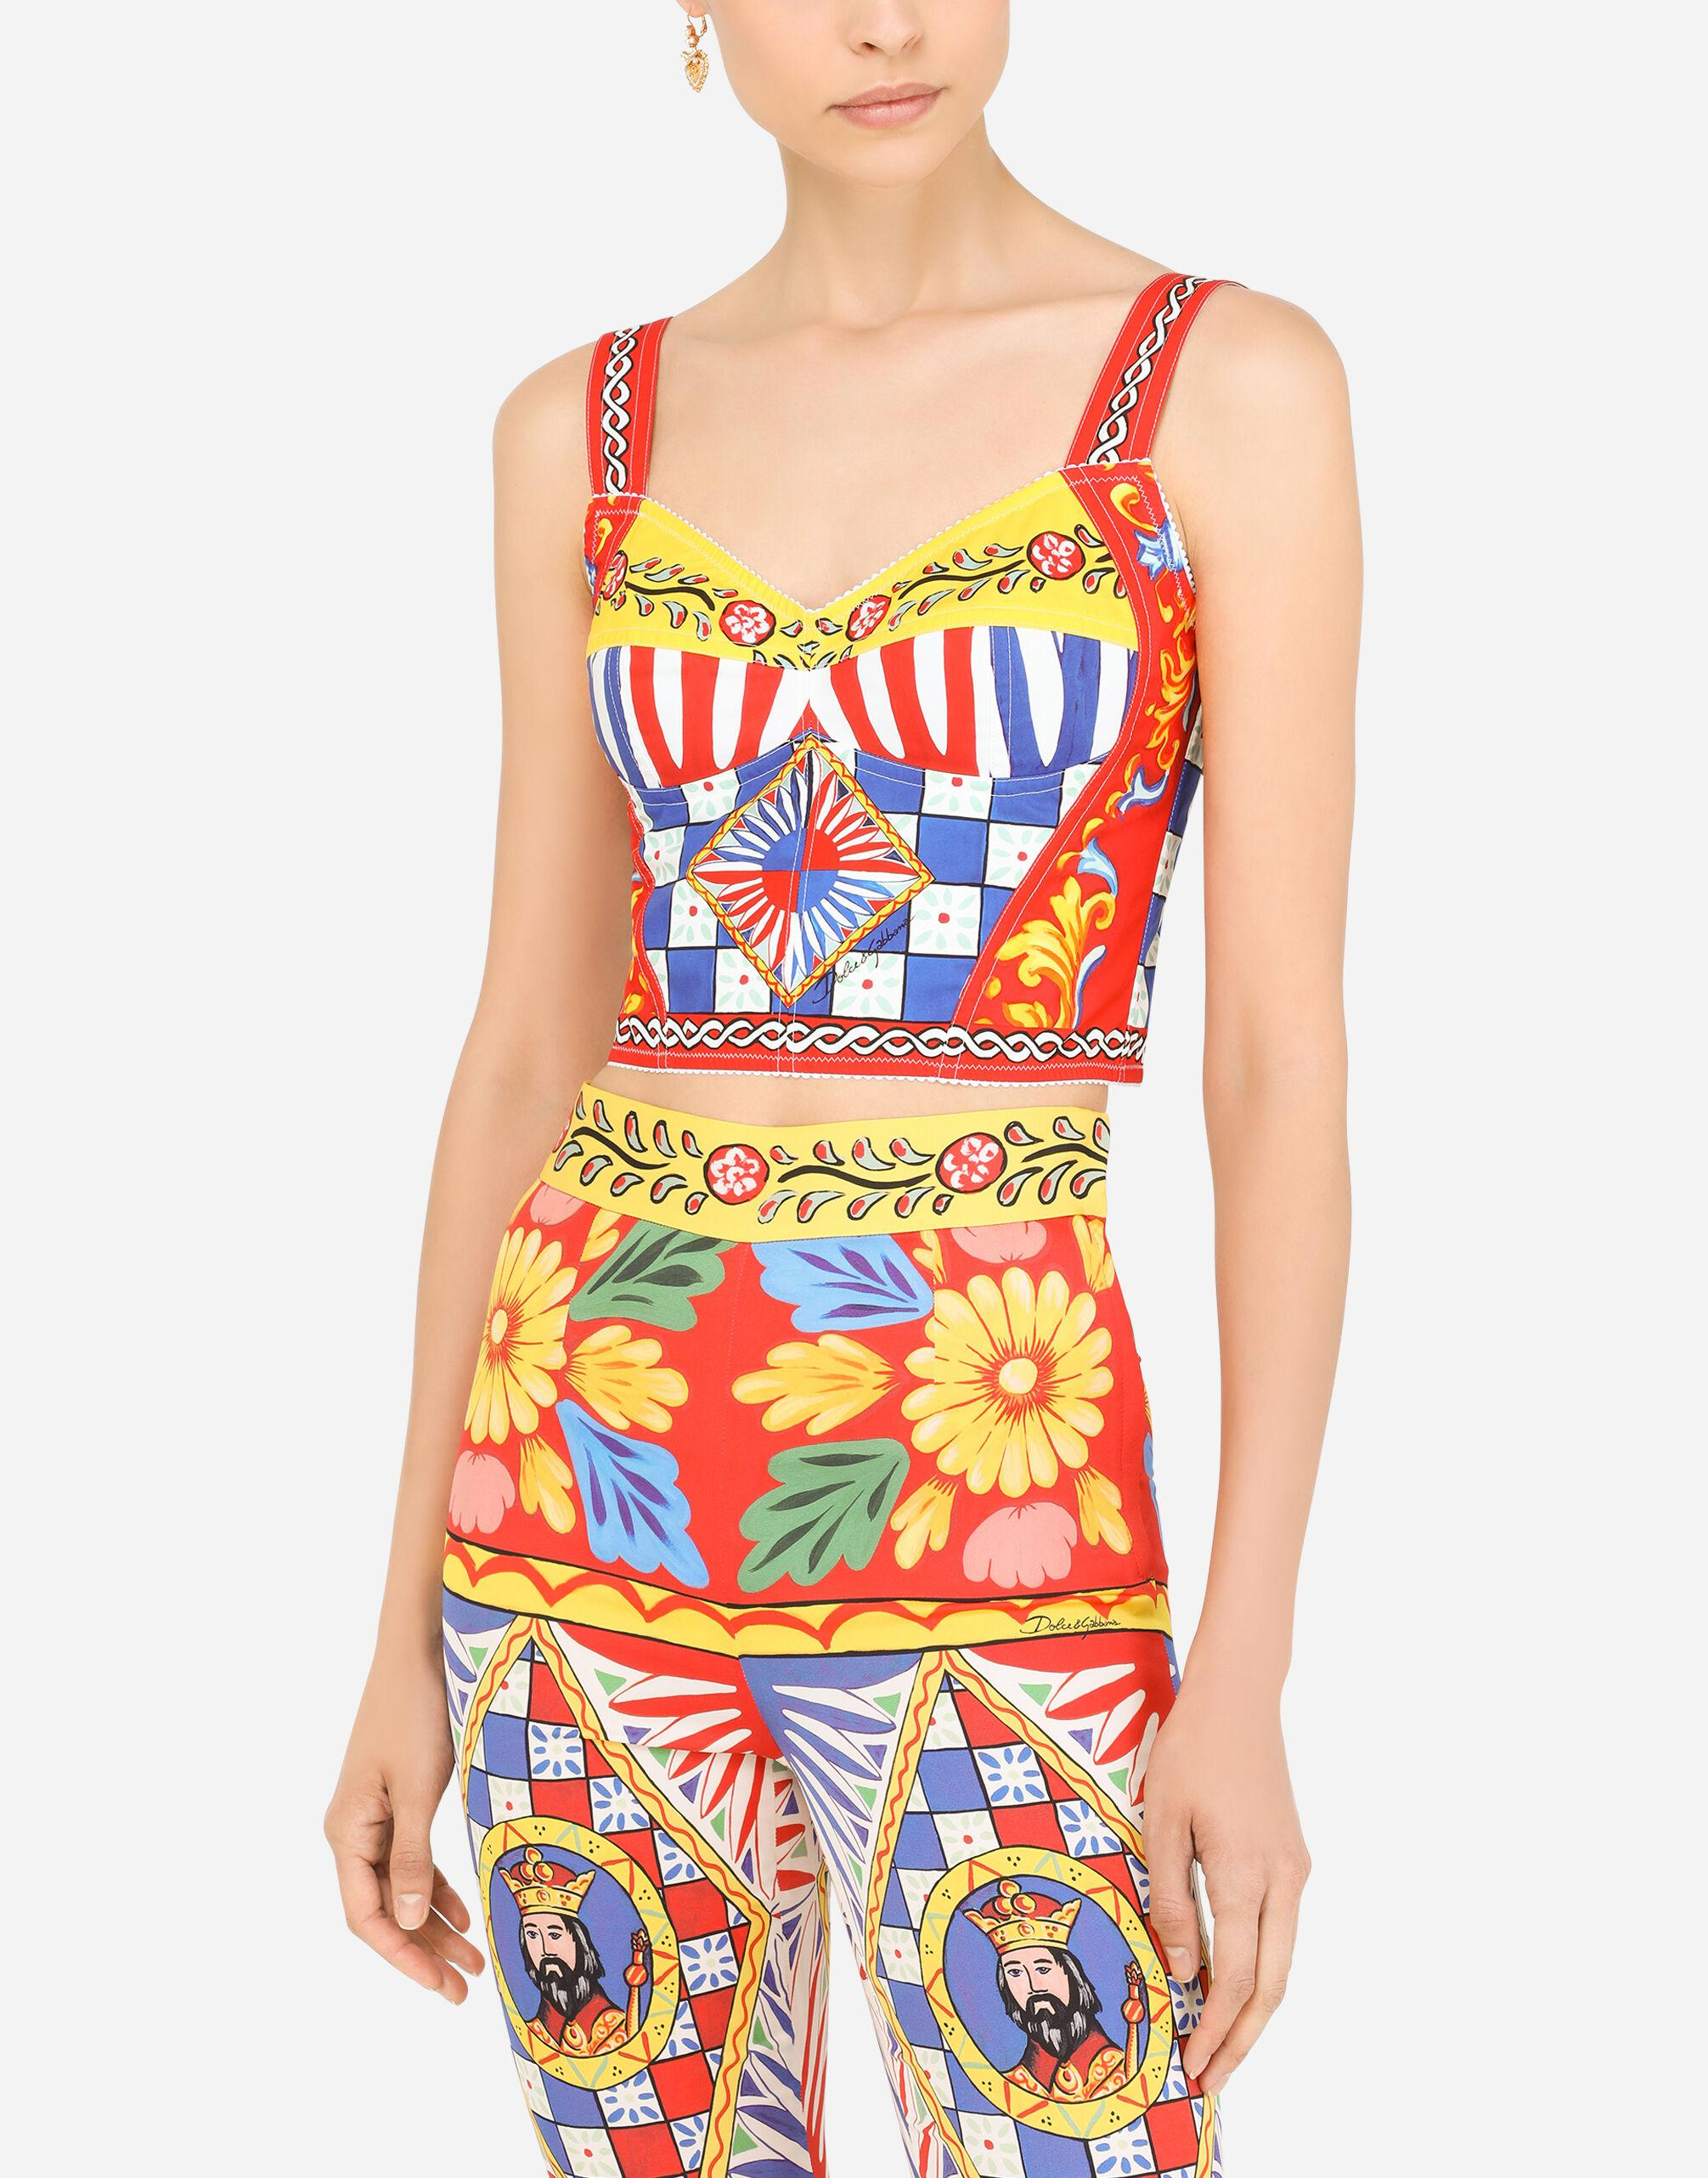 Carretto-print charmeuse bustier top 2